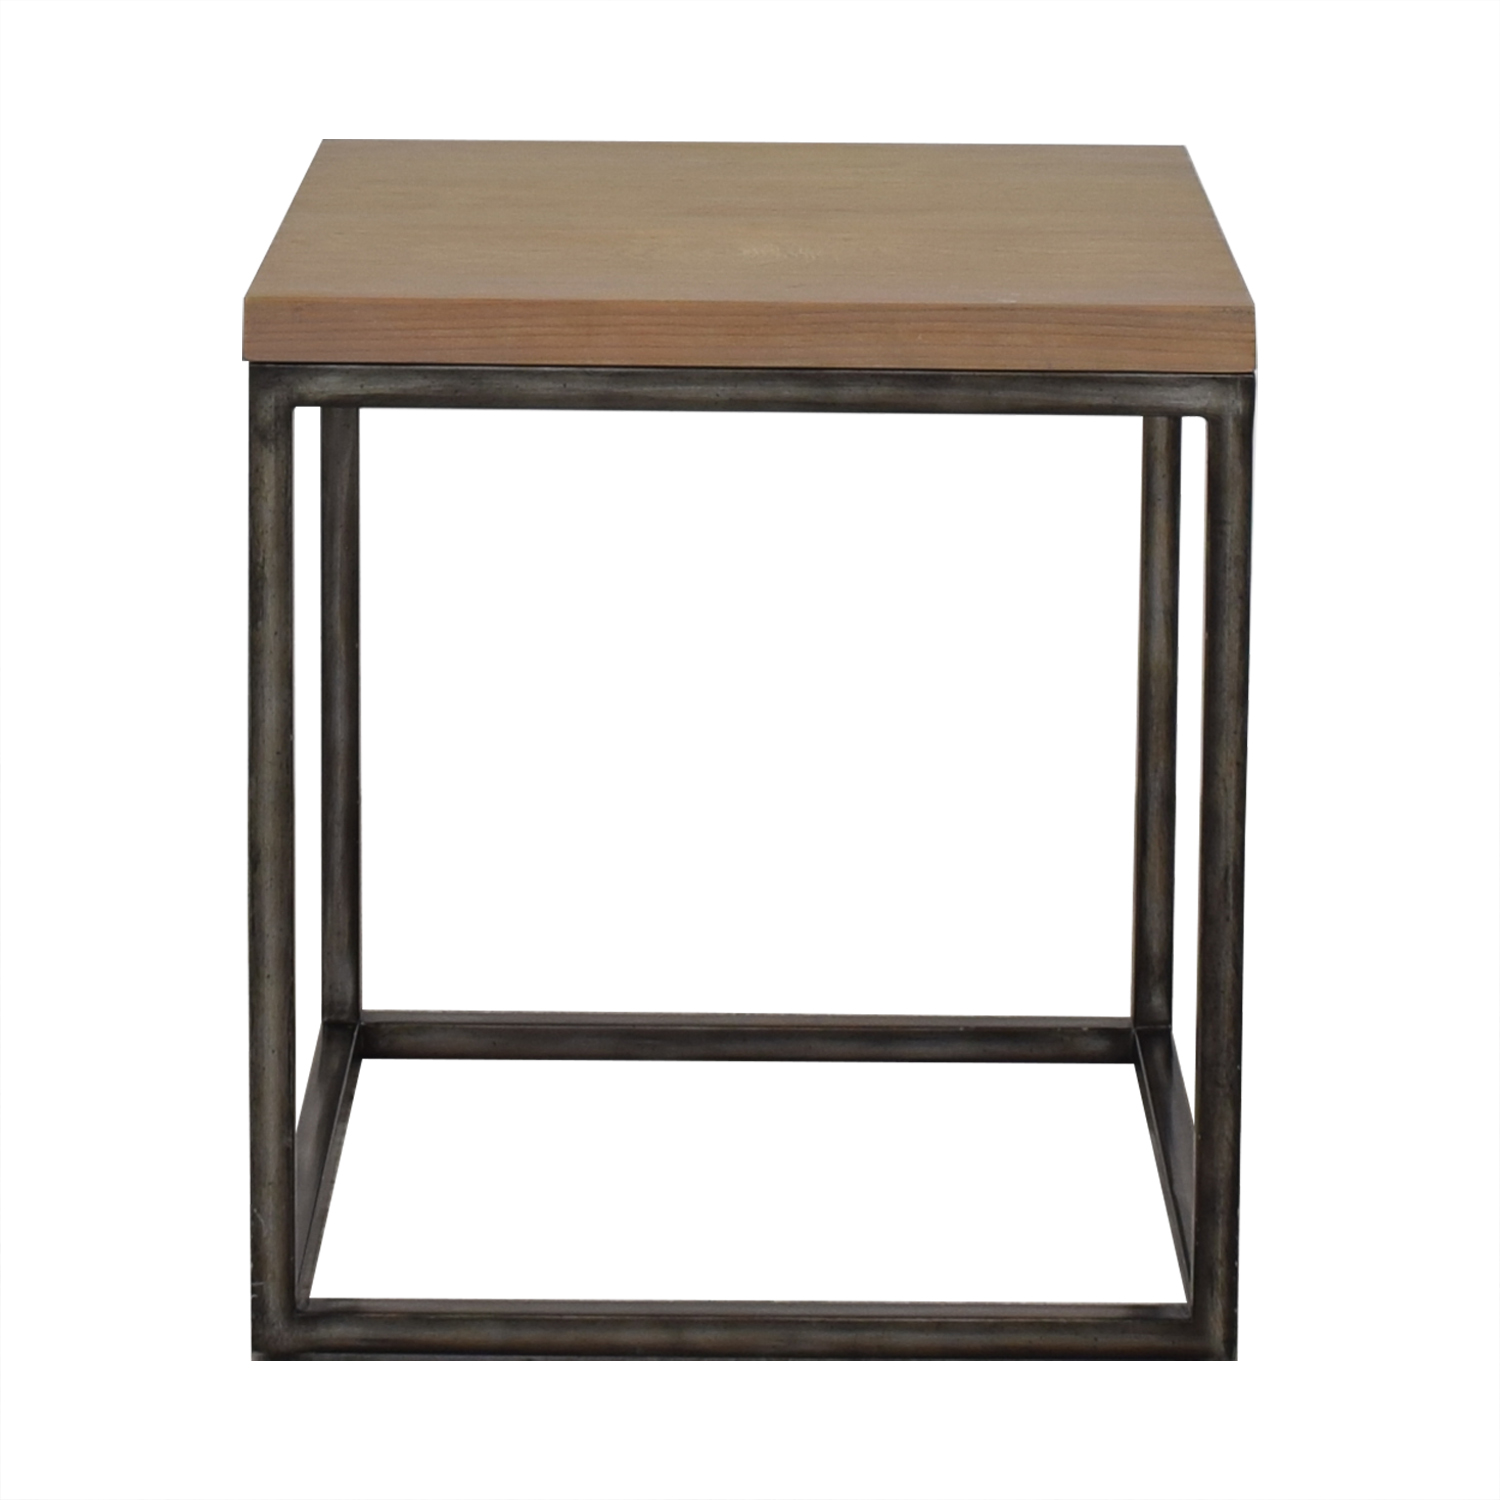 ABC Carpet & Home ABC Carpet & Home End Table pa